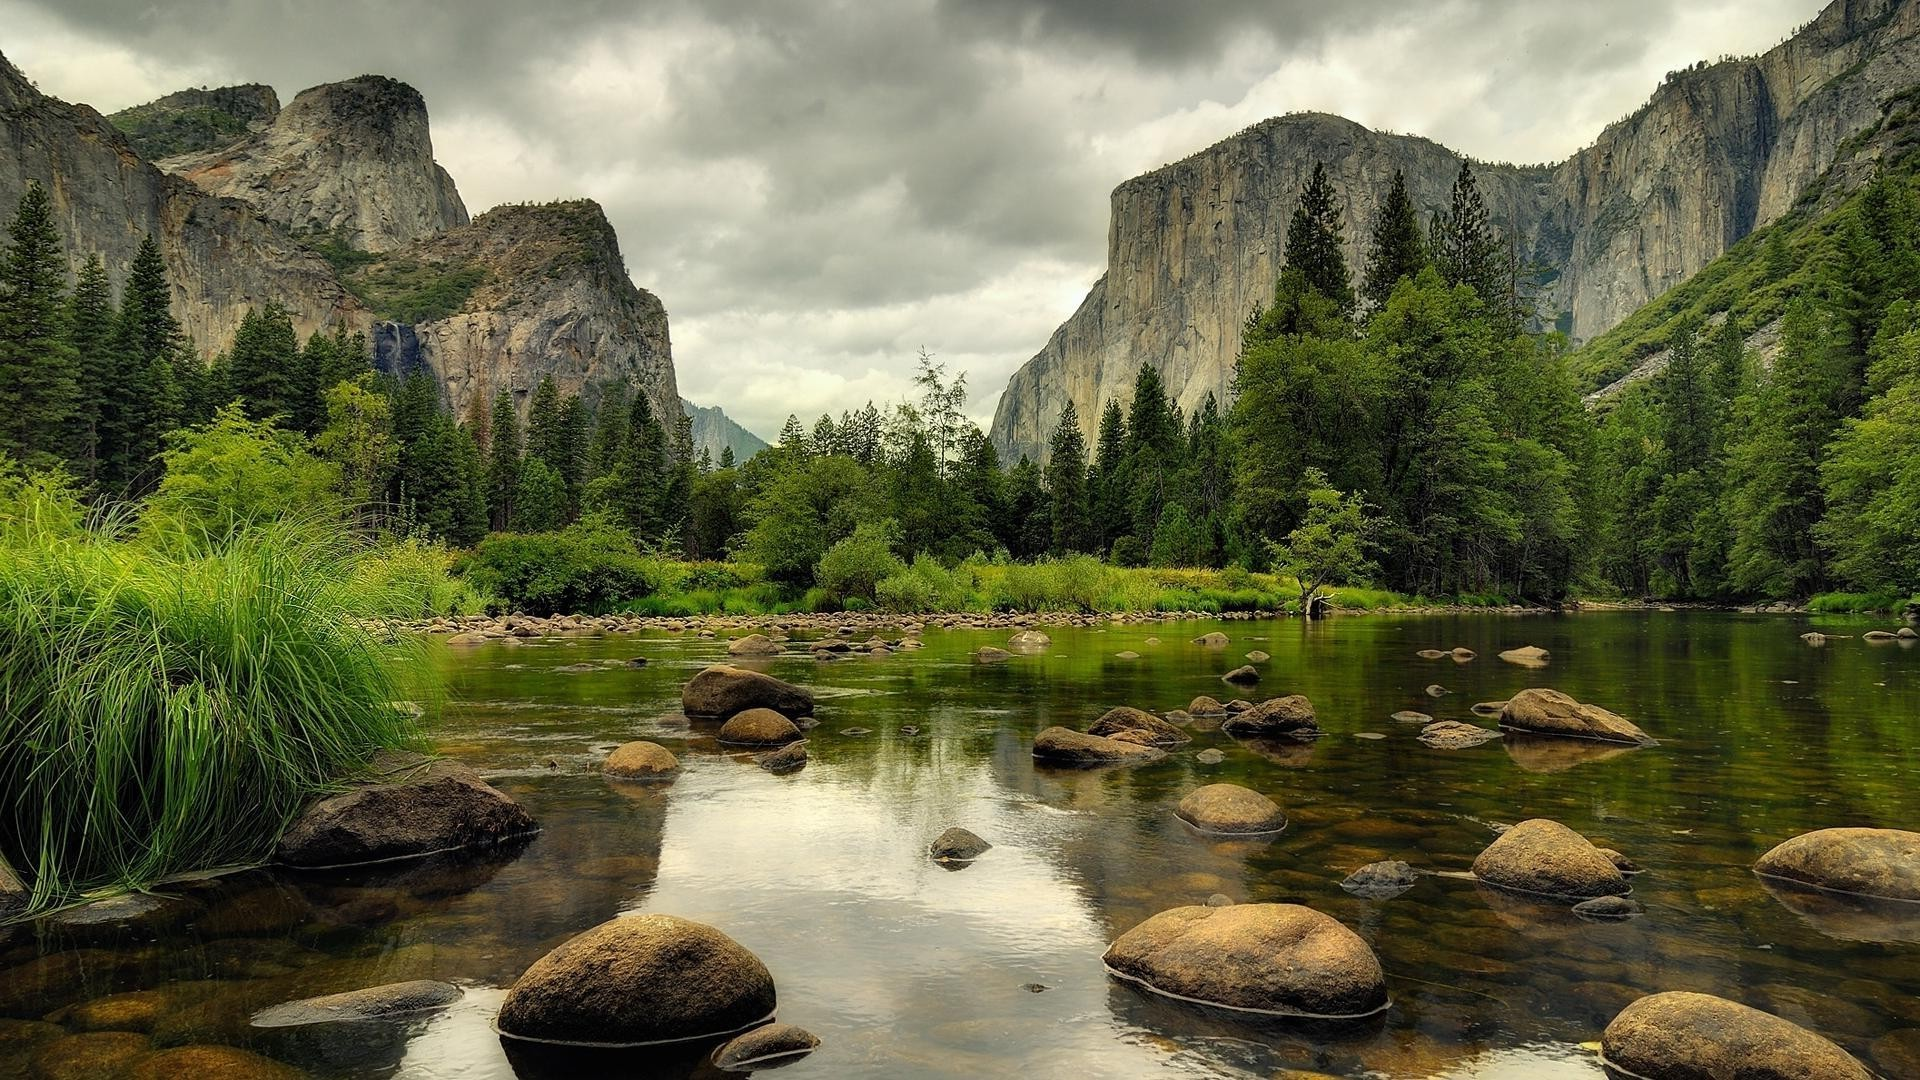 Stones, river, spruce, grass, rocks, clouds